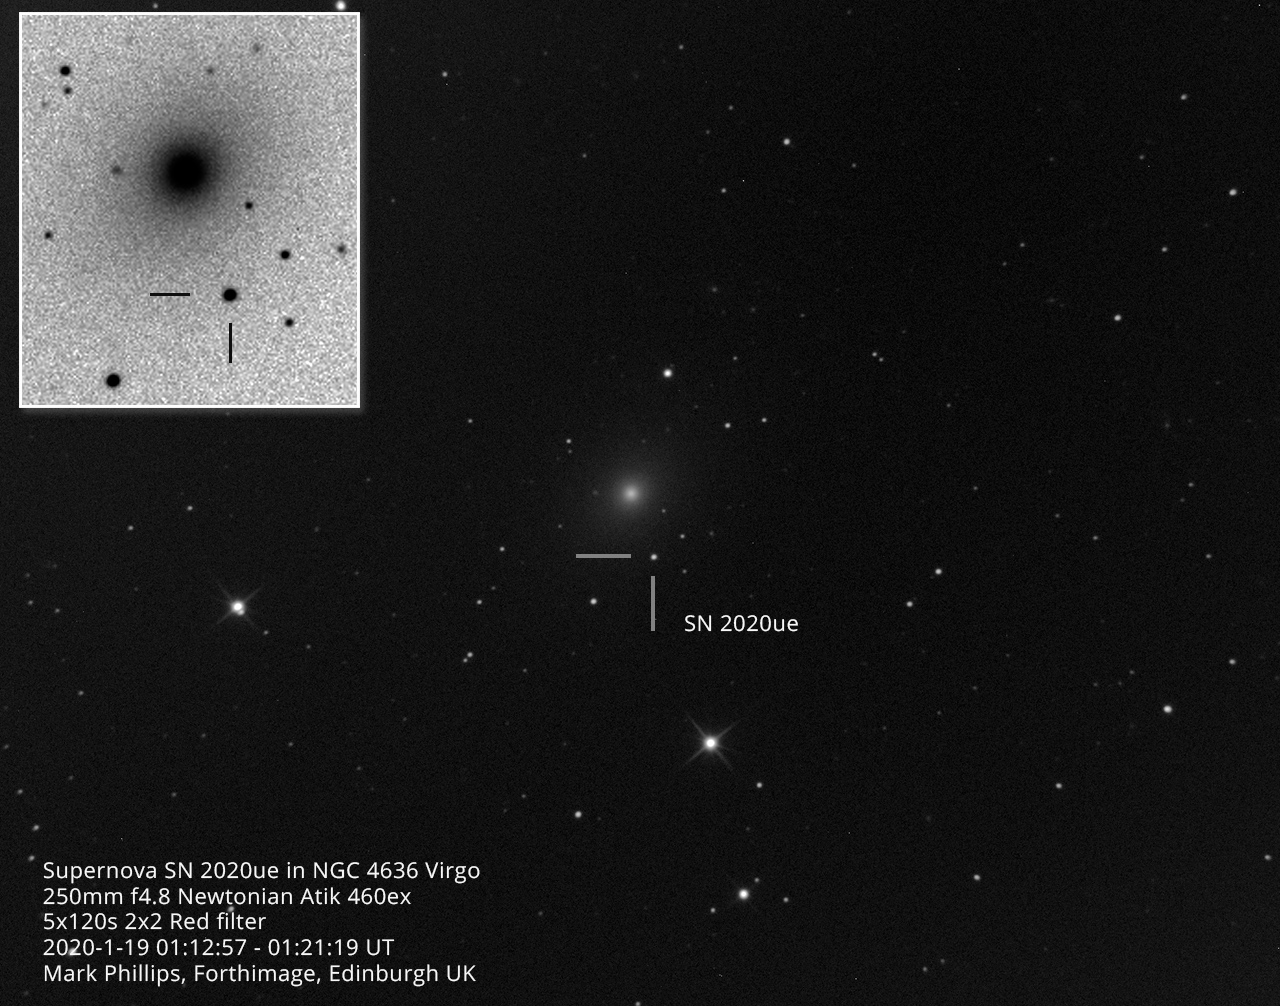 Supernova SN 2020ue in NGC 4636